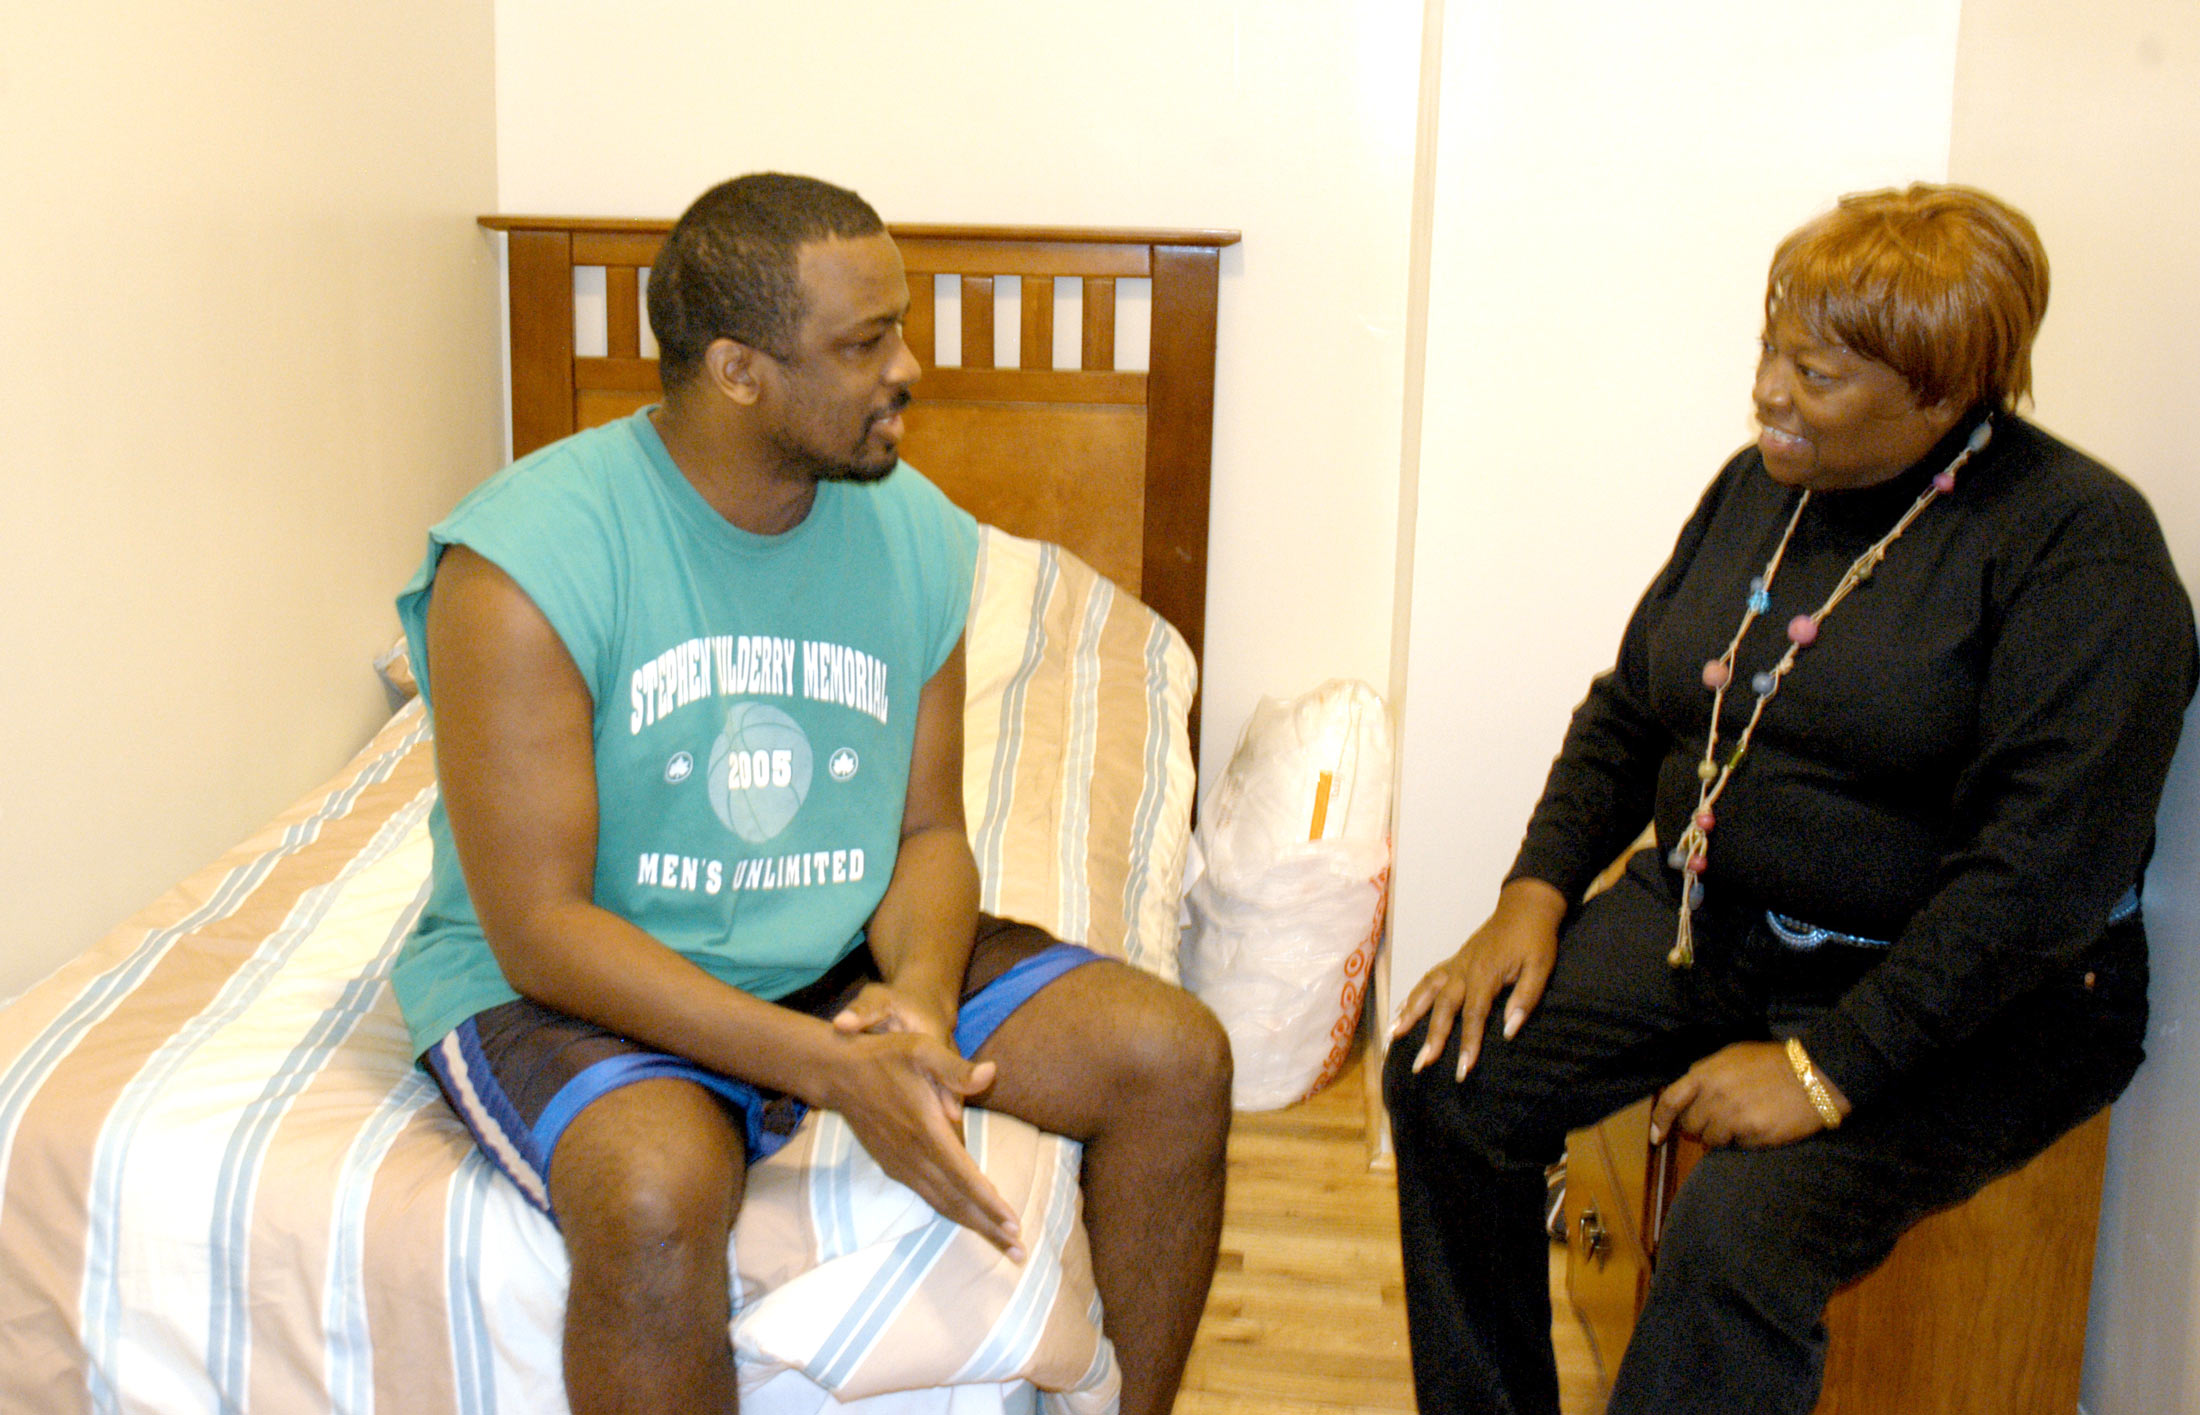 A CASES counselor visits with a participant in his bedroom